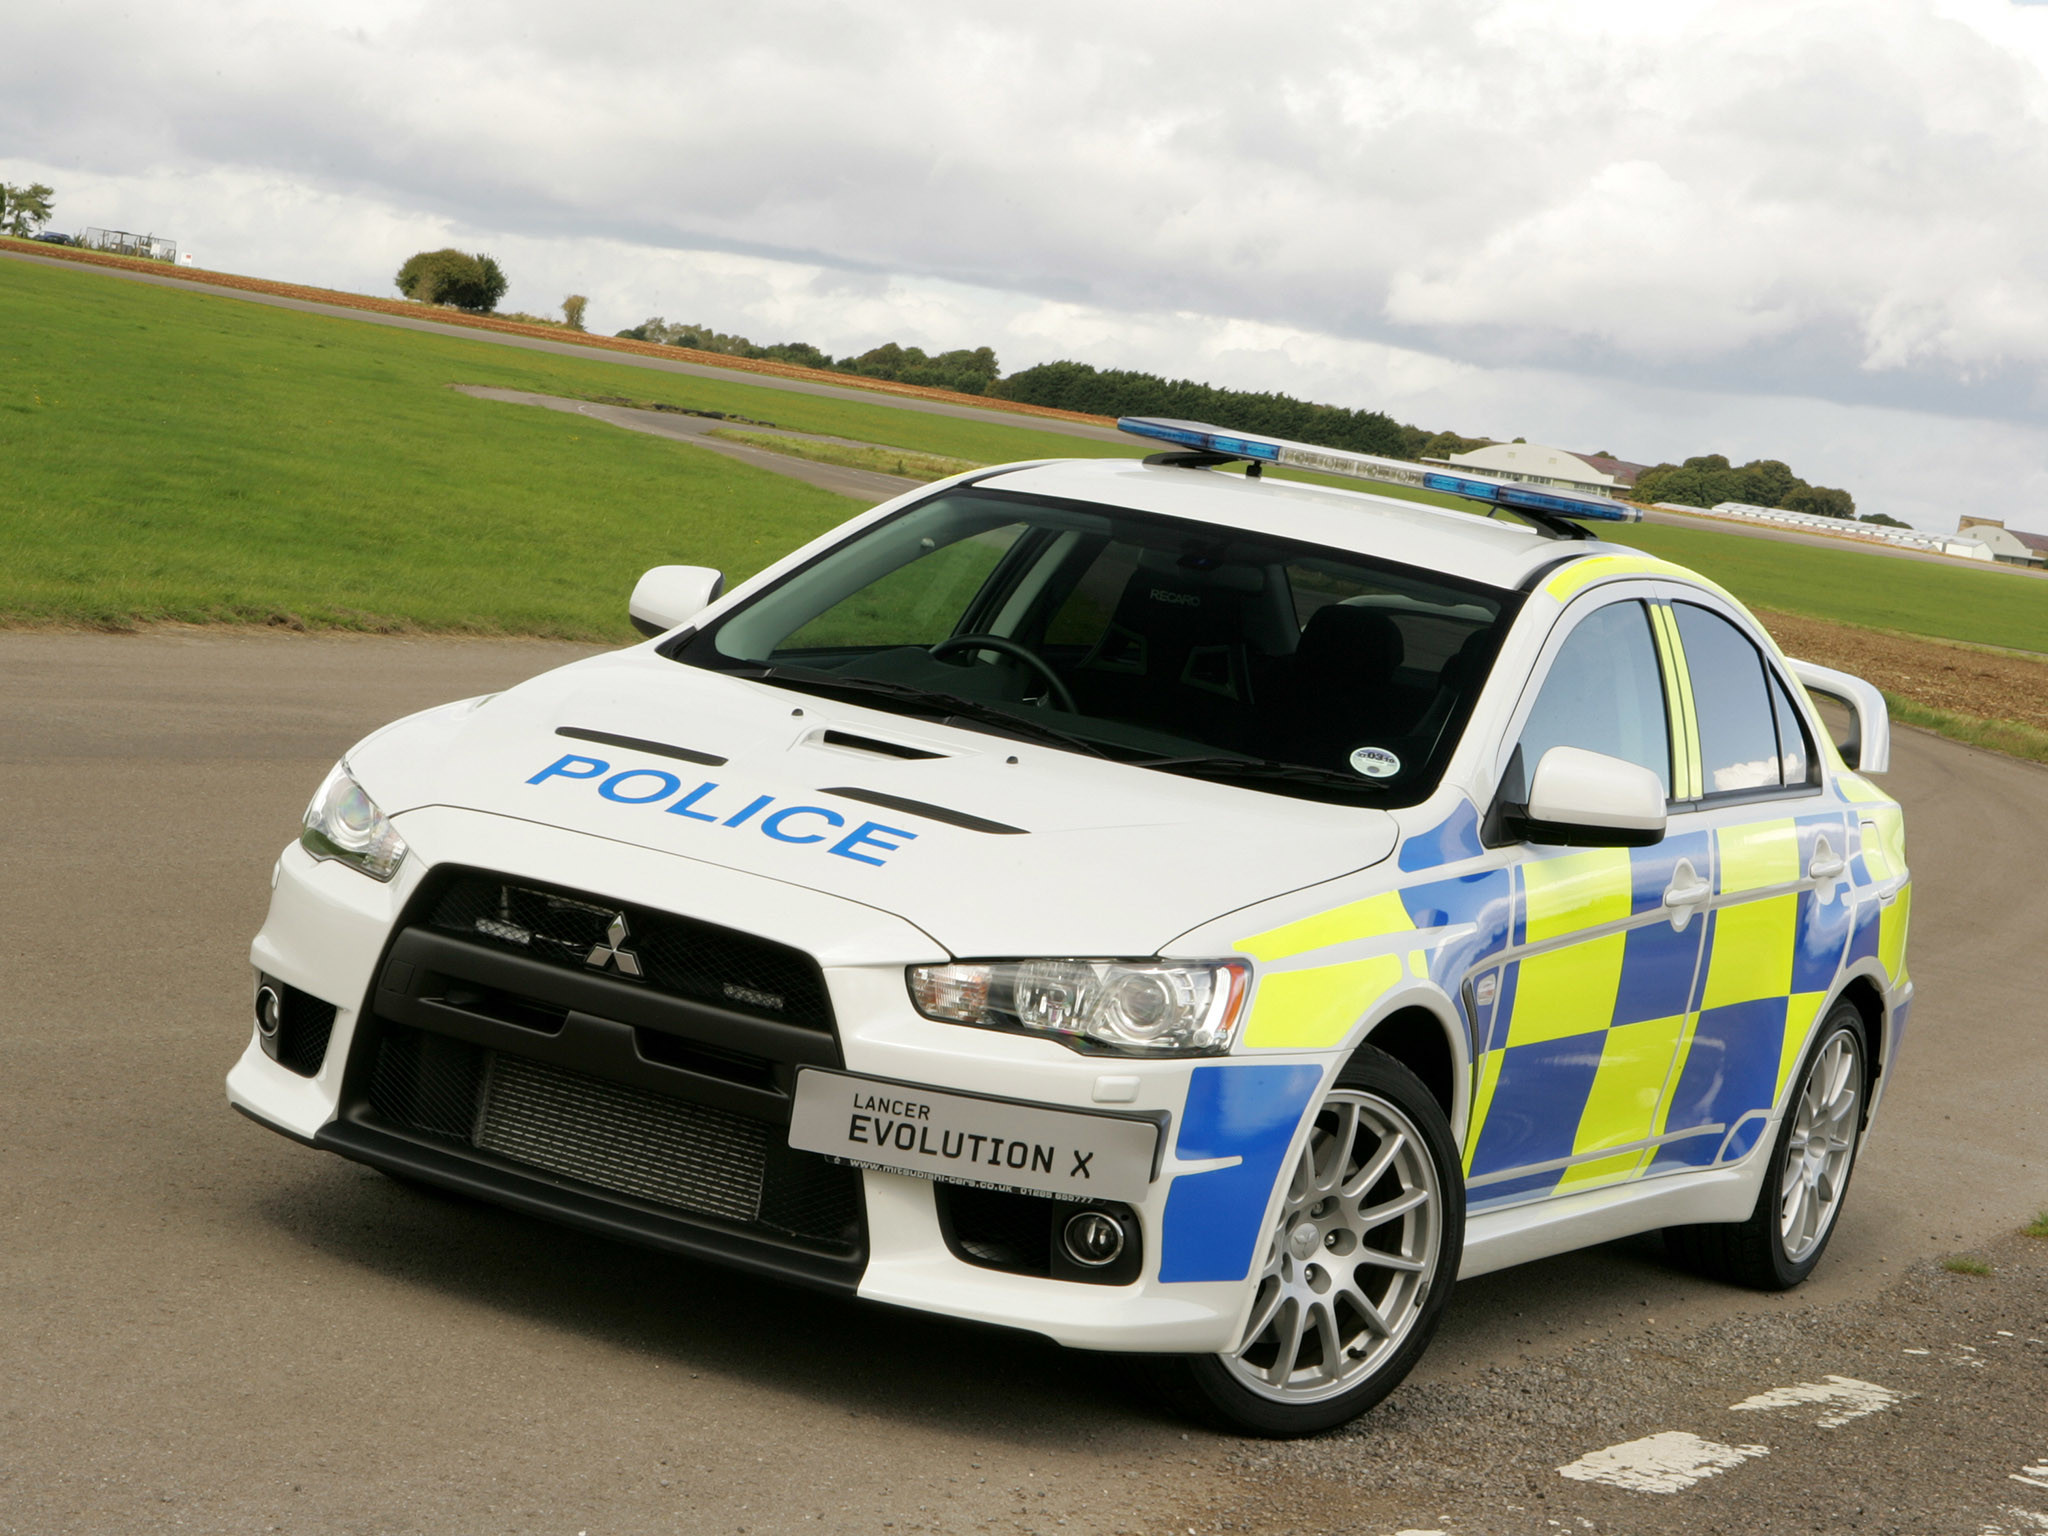 2048x1536 Police Car Hd Mitsubishi Lancer Evolution X Edition Walls 504080 Wallpaper  wallpaper